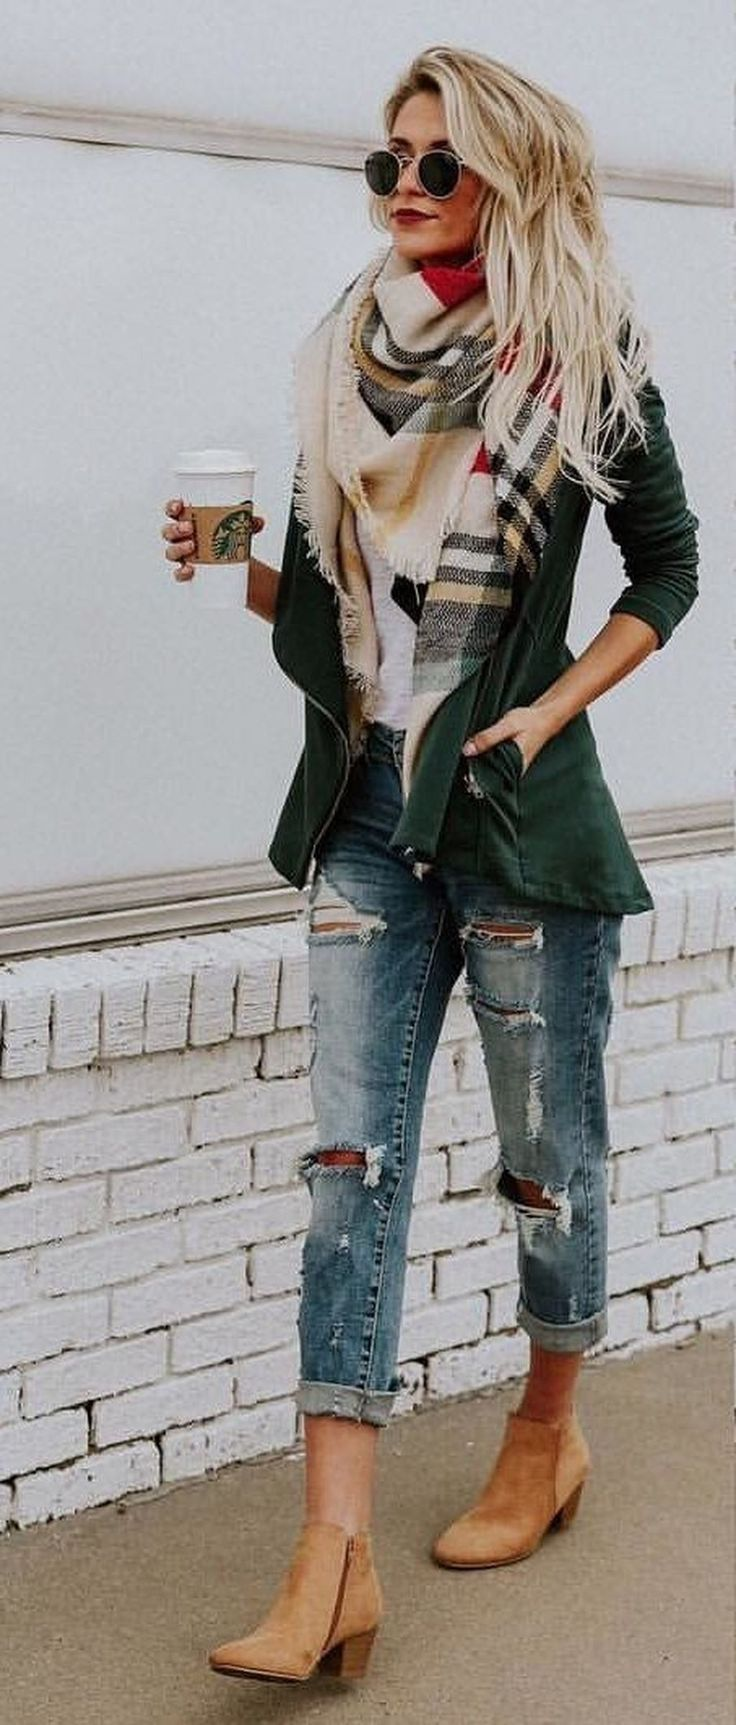 Awesome 38 Totally Perfect Winter Outfits Ideas You Will Fall in Love With. More at http://aksahinjewelry.com/2017/12/03/38-totally-perfect-winter-outfits-ideas-will-fall-love/